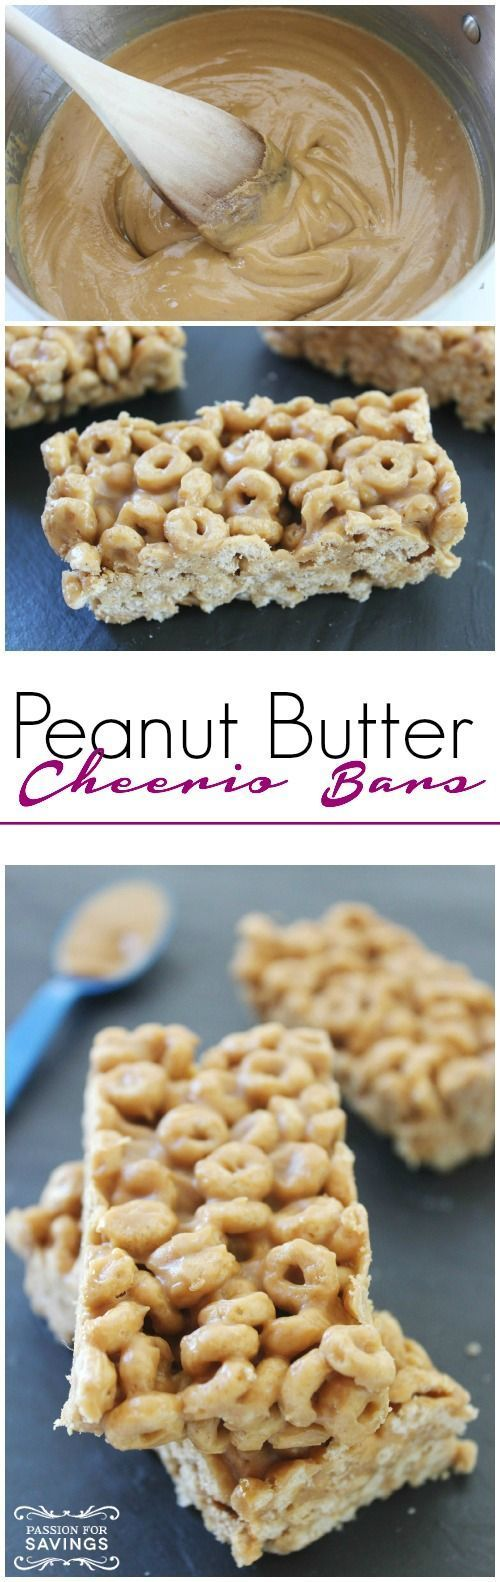 Peanut Butter Cheerio Bars! Homemade Breakfast Recipe or Snack Recipe for an easy Treat! #healthysnacksforkids